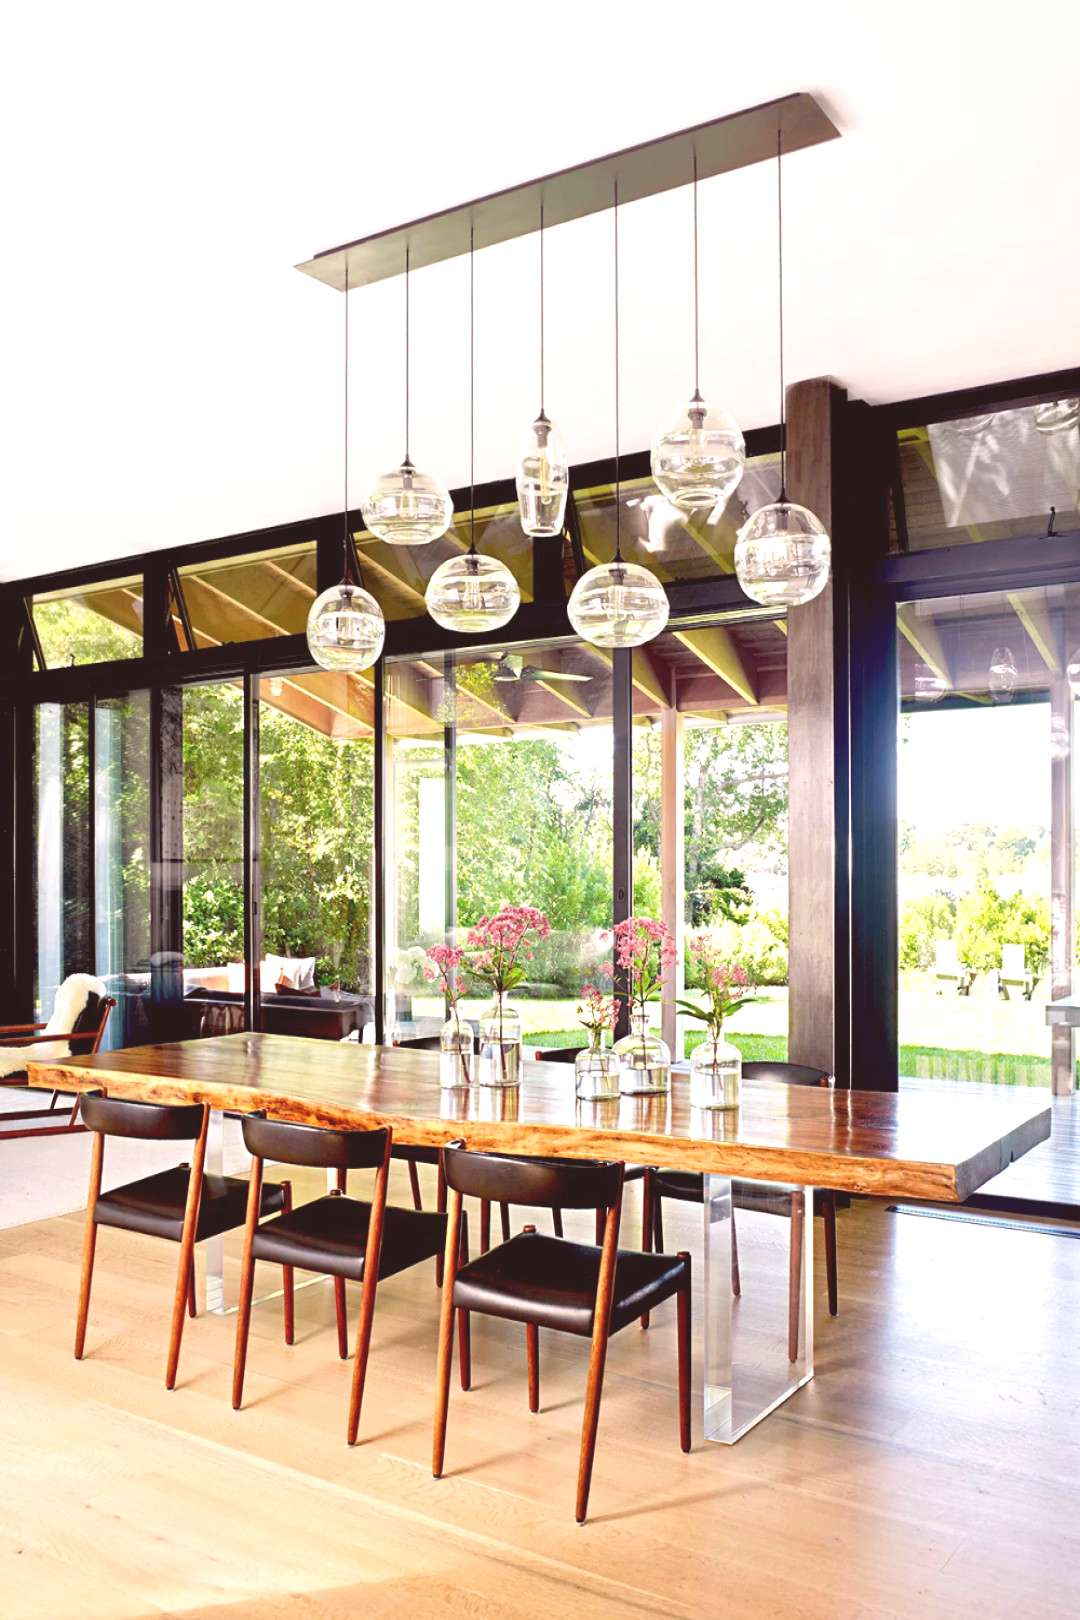 8 Must-See Design Trends to Steal from Your Favorite Restaurants#design